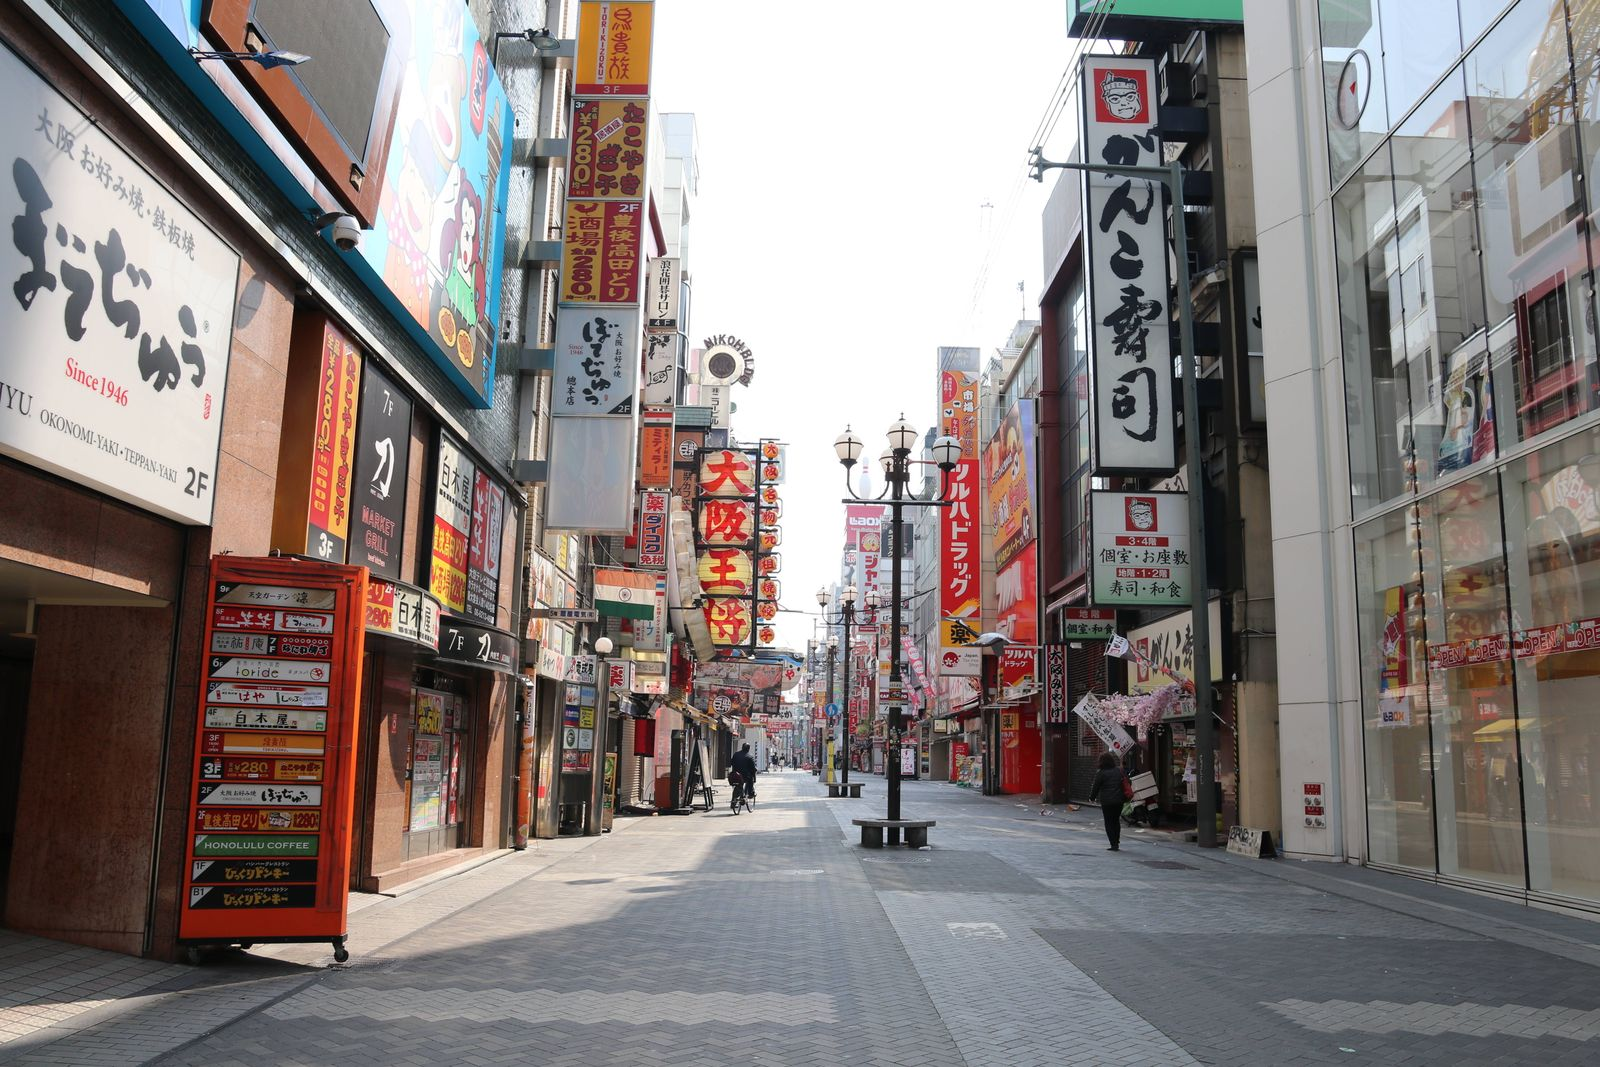 Few people are seen at Dotonbori shopping and amusement district in Osaka, Japan on April 8, 2020, a day after Japanese